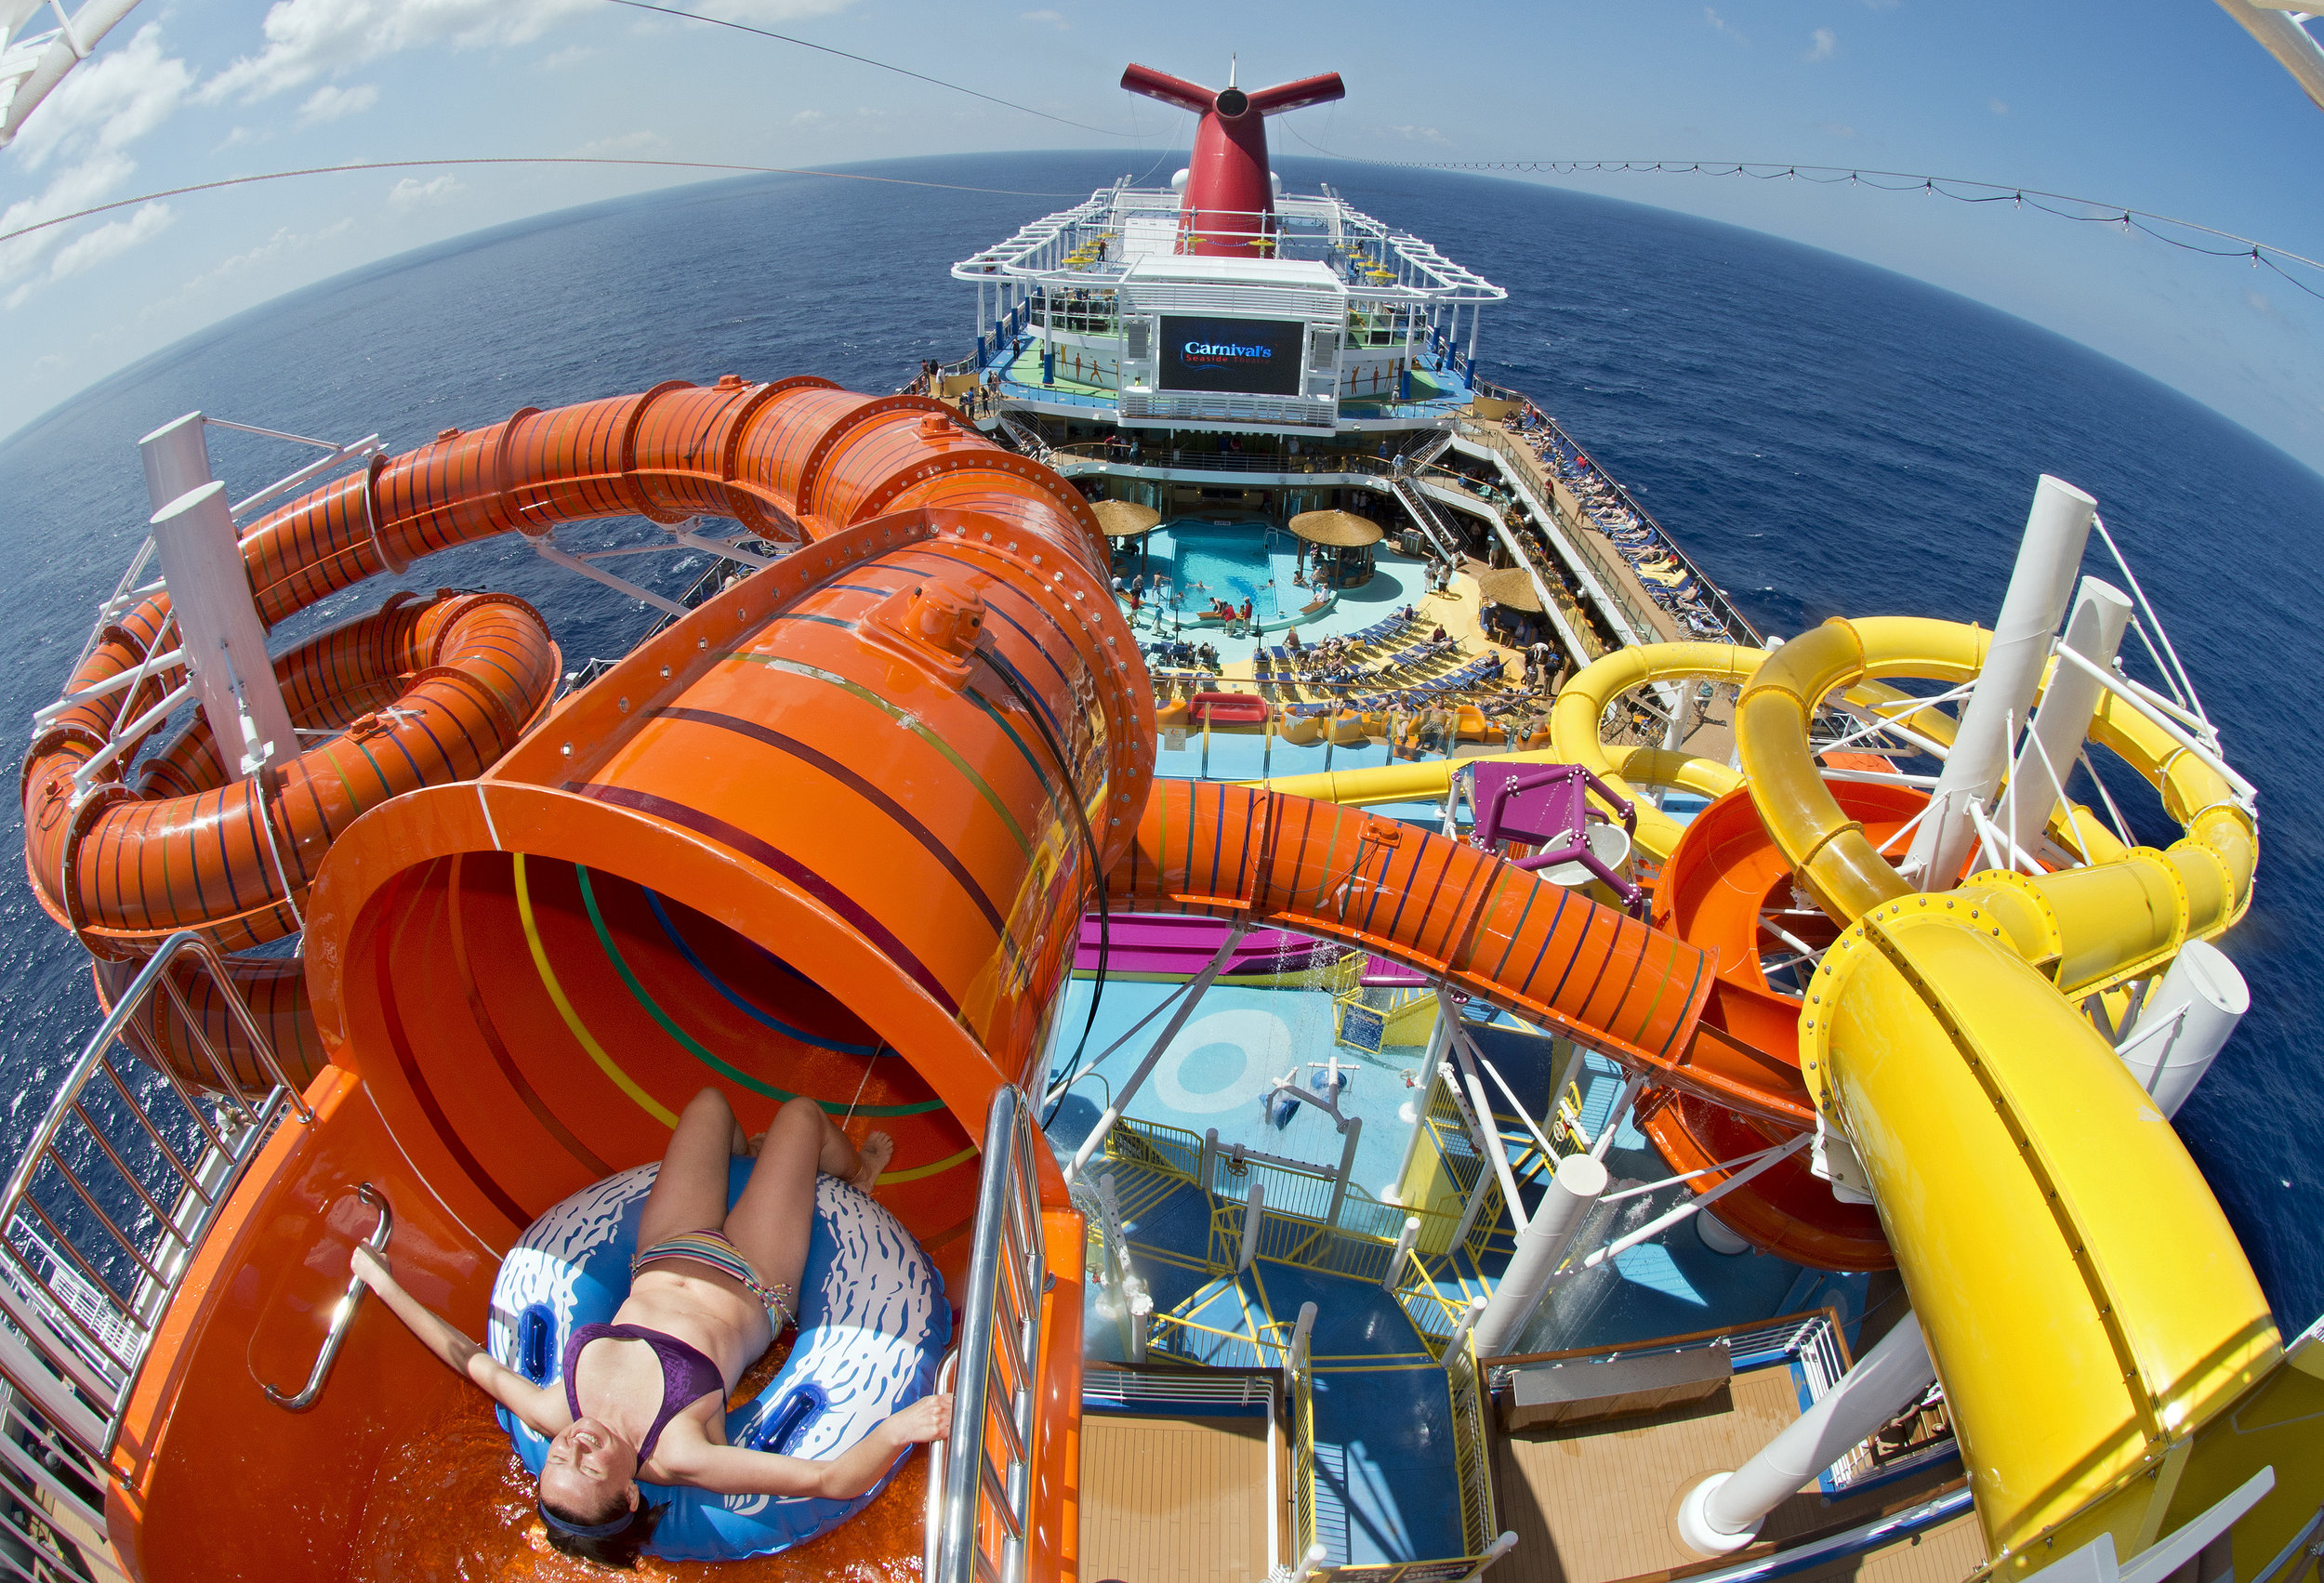 Carnival Cruises | Spring Break Cruise | Spring Break 2018 | The Fun Ships | Cruise Vacations | Cruises to Mexico | Bahamas Vacation | Honeymoons in Caribbean | Ashley Rae Co.